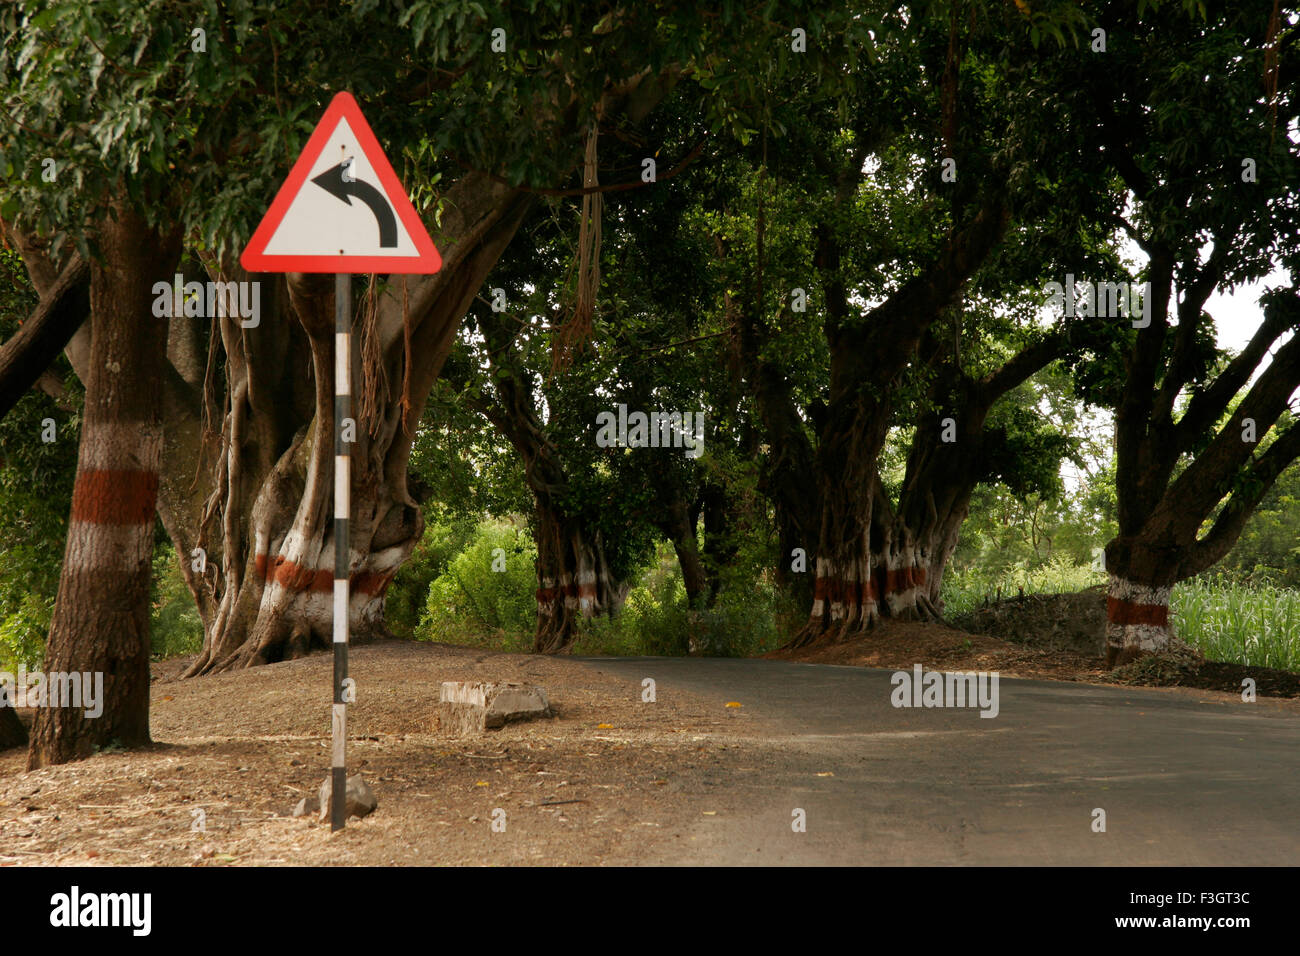 Road sign indicating left turn on the way of Wai; Maharashtra; India - Stock Image